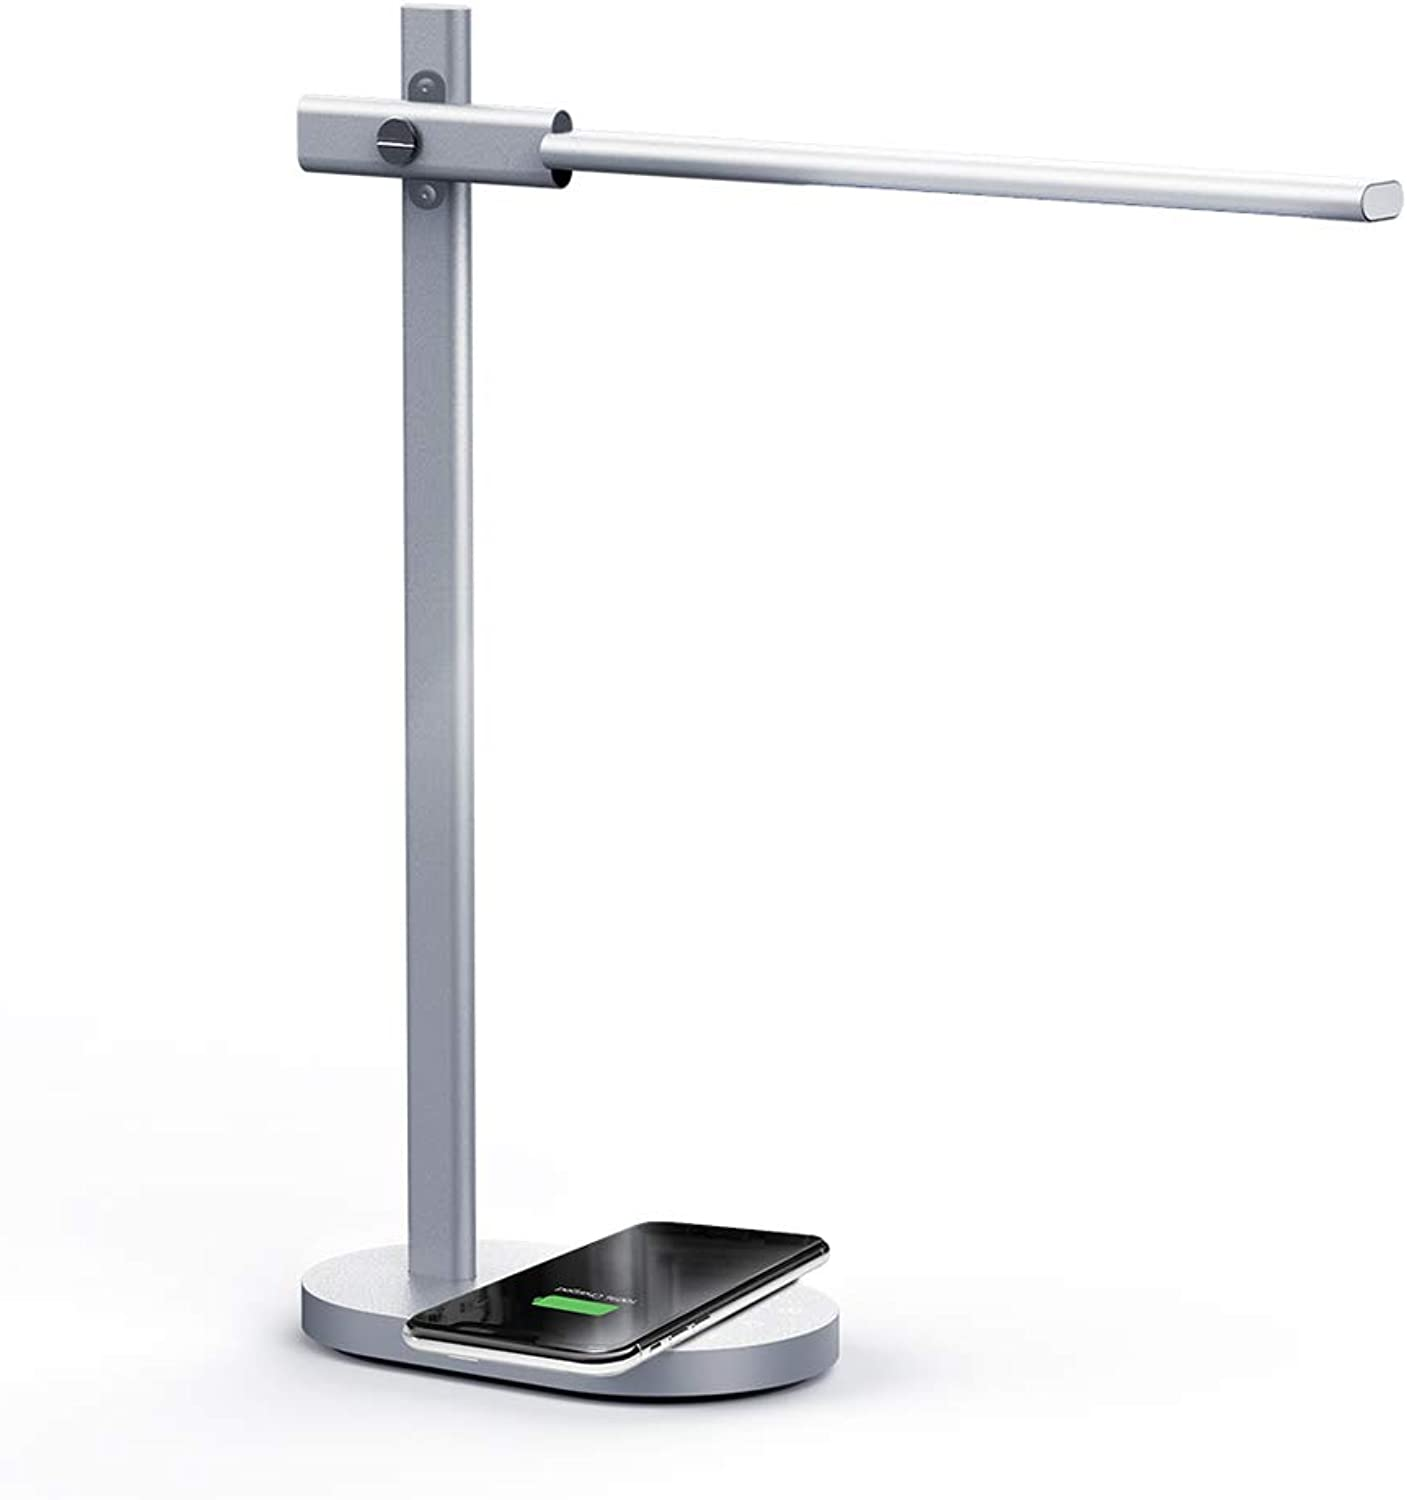 MOMAX LED Desk Lamp with Wireless Charging Pad, Premium Metal Table Lamp with 5 color Temperatures (2800-6500K) & 6 Brightness Levels - 5V 1A USB Charging Port, 1 Hour Timer & Memory Function